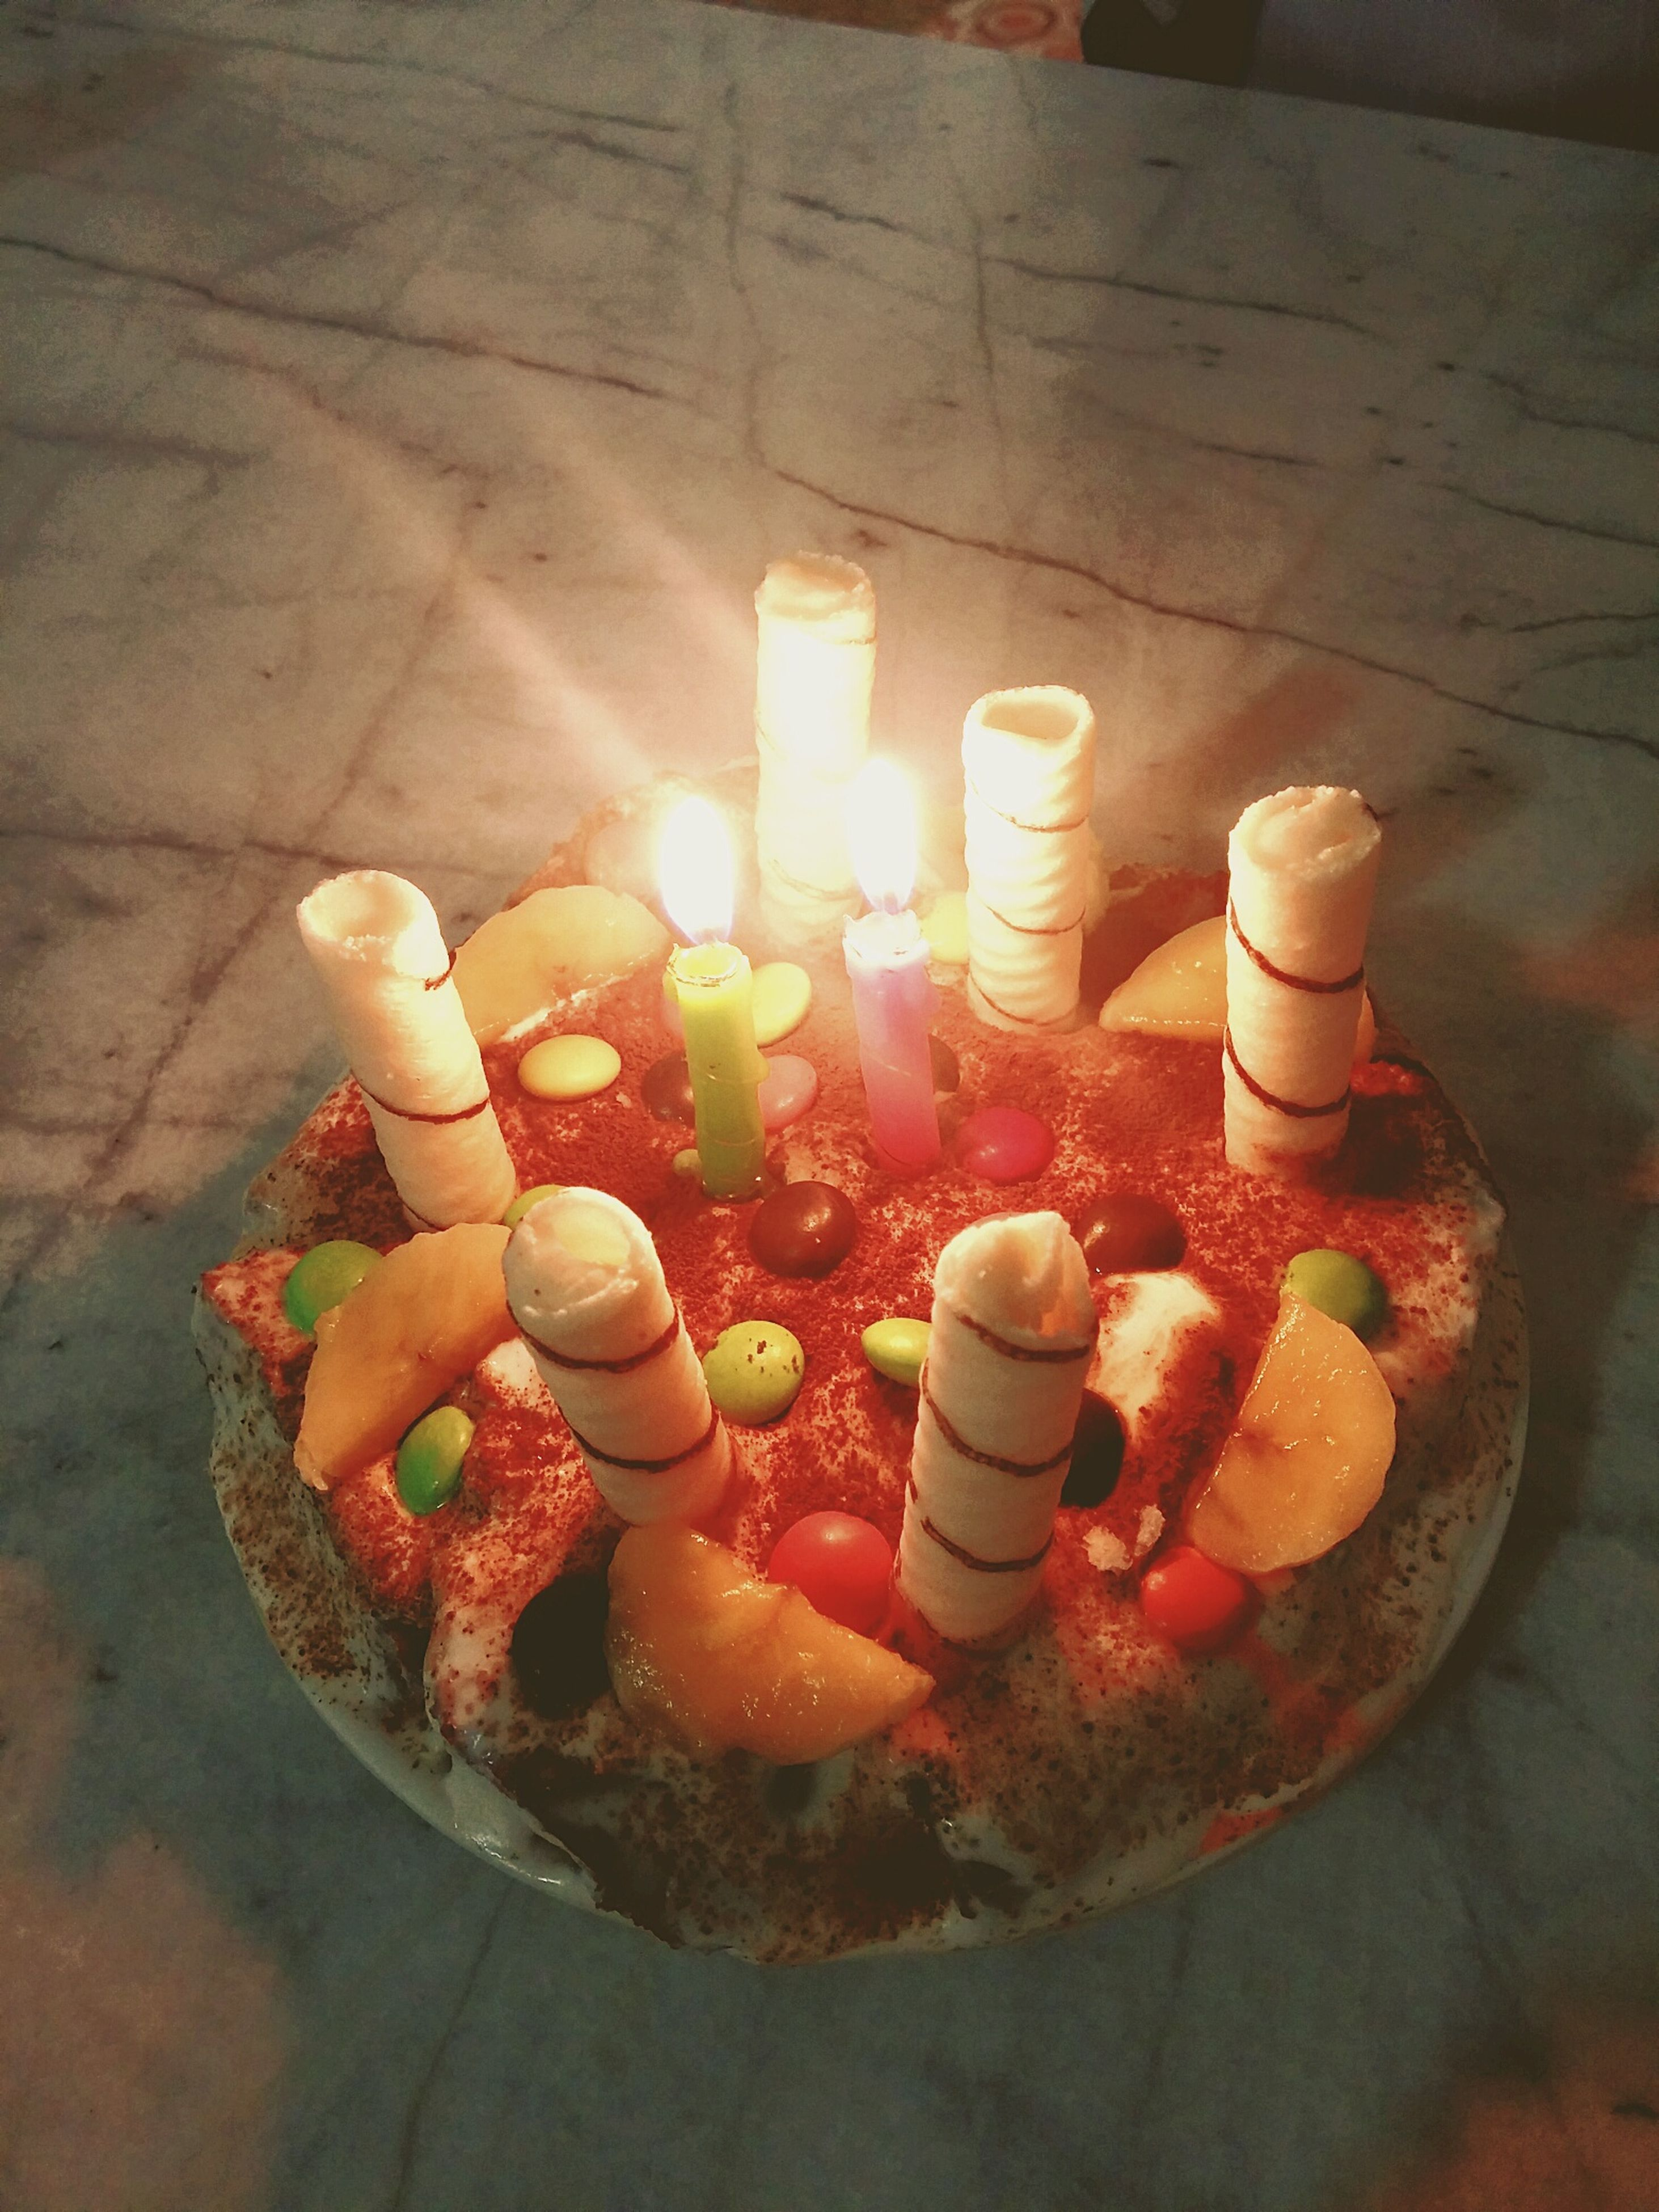 flame, burning, candle, indoors, fire - natural phenomenon, spirituality, religion, glowing, heat - temperature, sweet food, large group of objects, dessert, place of worship, temptation, candlelight, birthday candles, lit, tea light, multi colored, religious offering, unhealthy eating, freshness